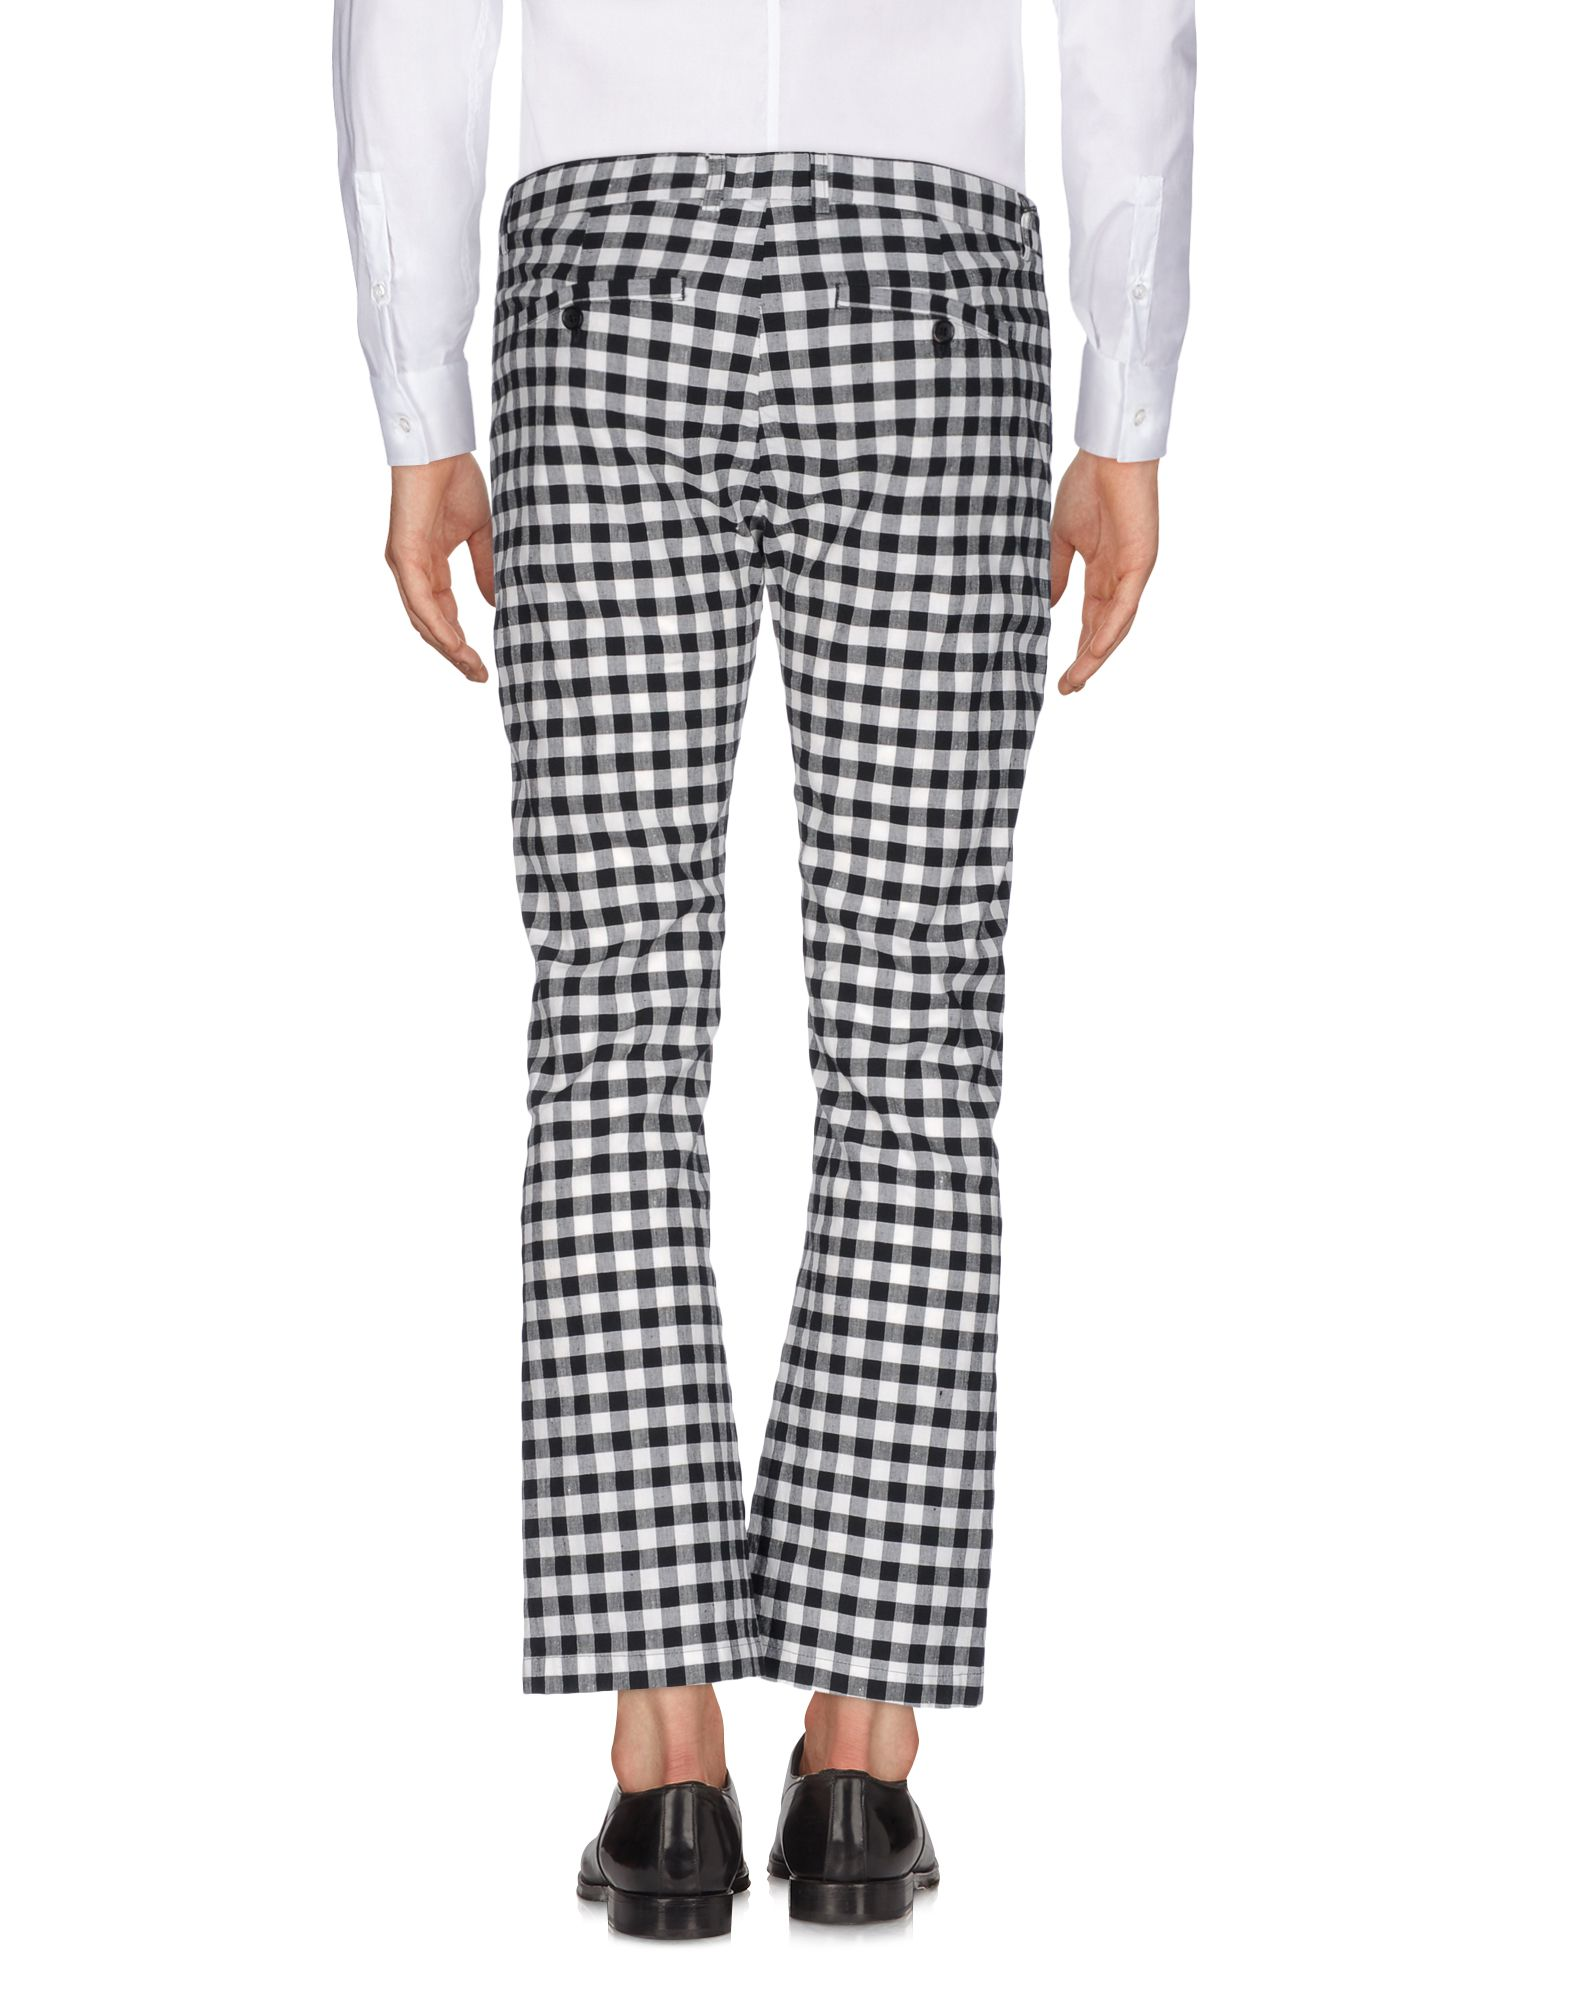 Pantalone Department Department Pantalone 5 Uomo - 13095339SF 46ffc9